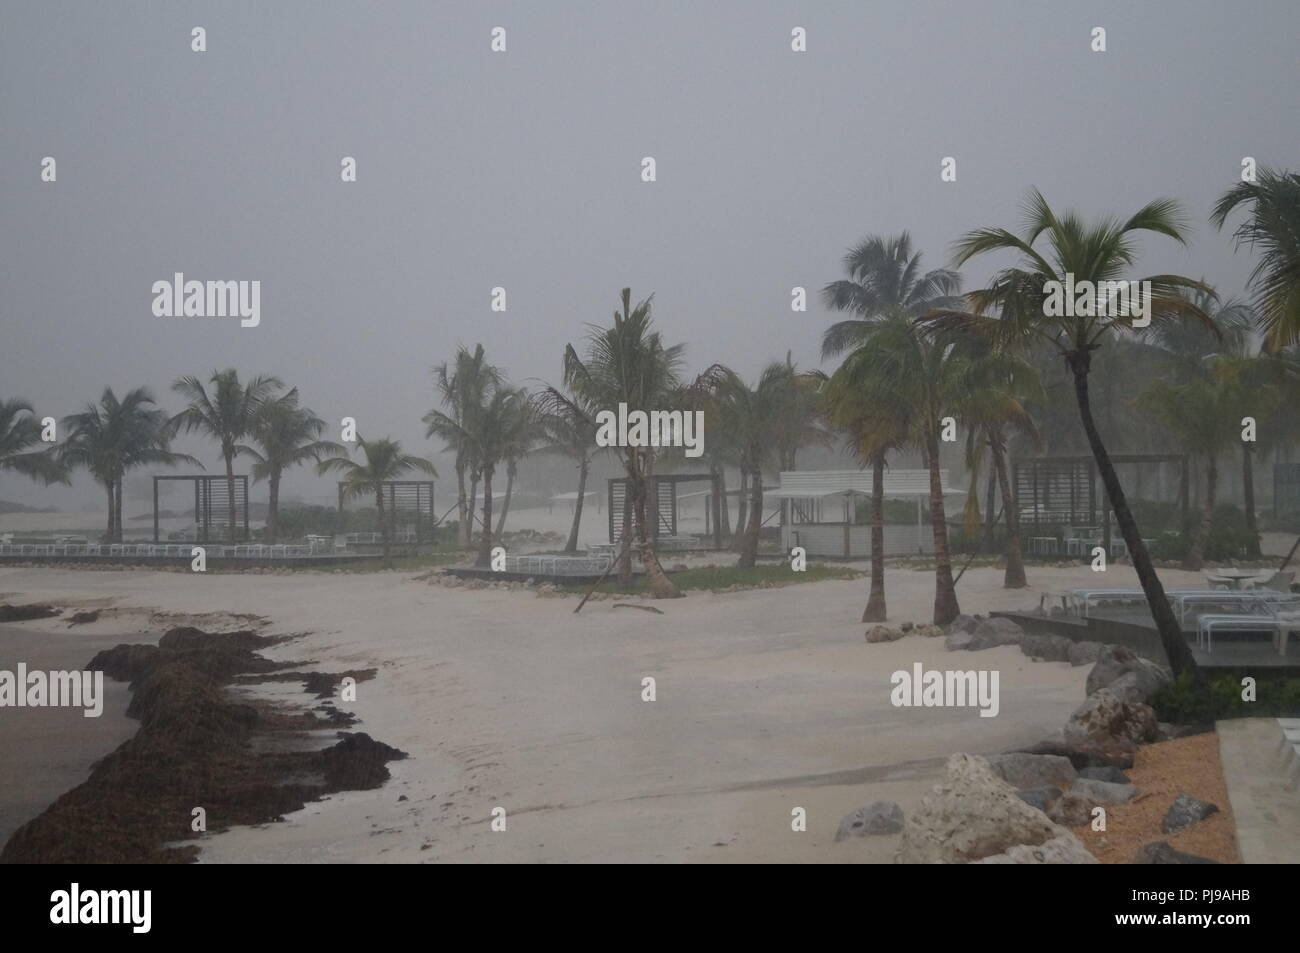 Rainy day at a beach on a Caribbean Island during storm season (summer) - Stock Image